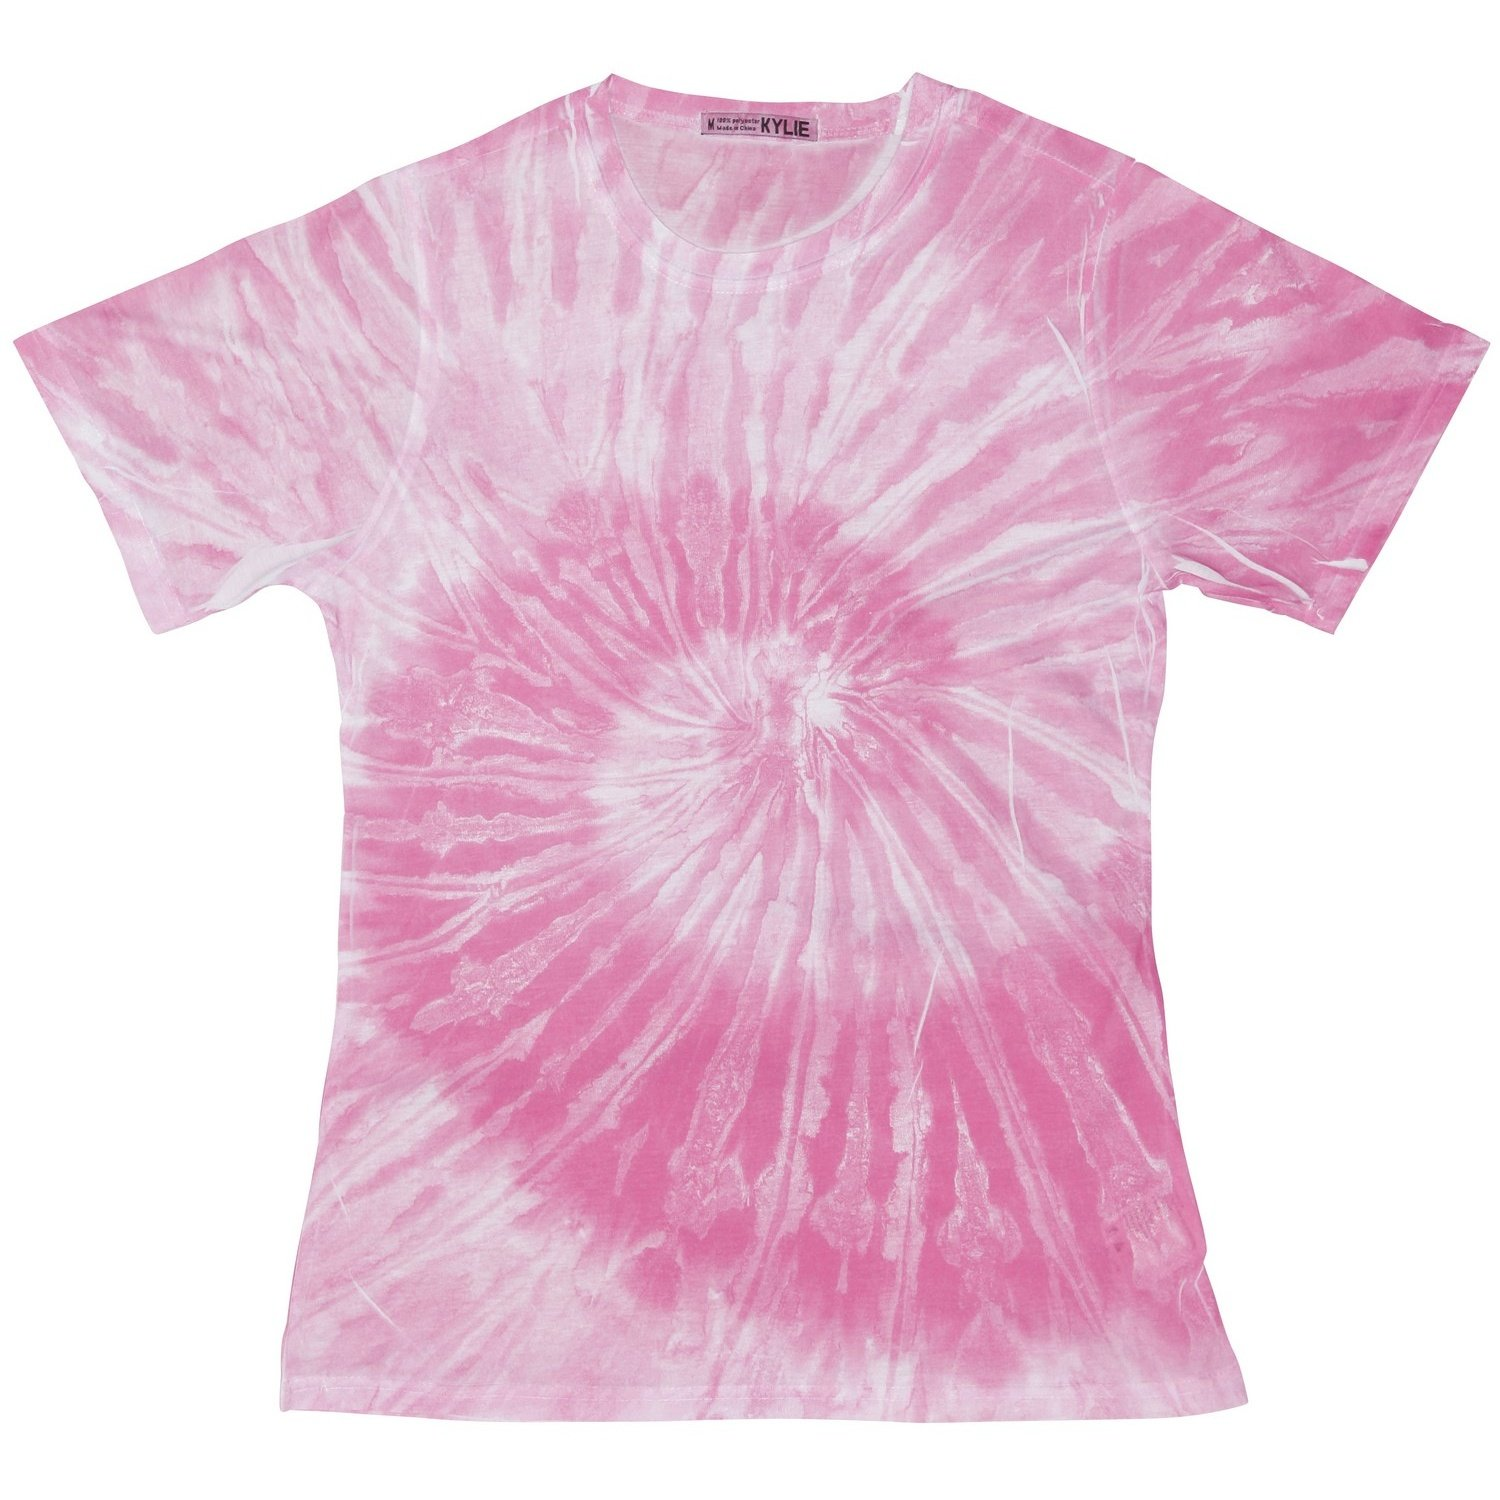 Perfekt Amazon.com: Colortone Womens/Ladies Short Sleeve Spider Tie Dye T  Shirt